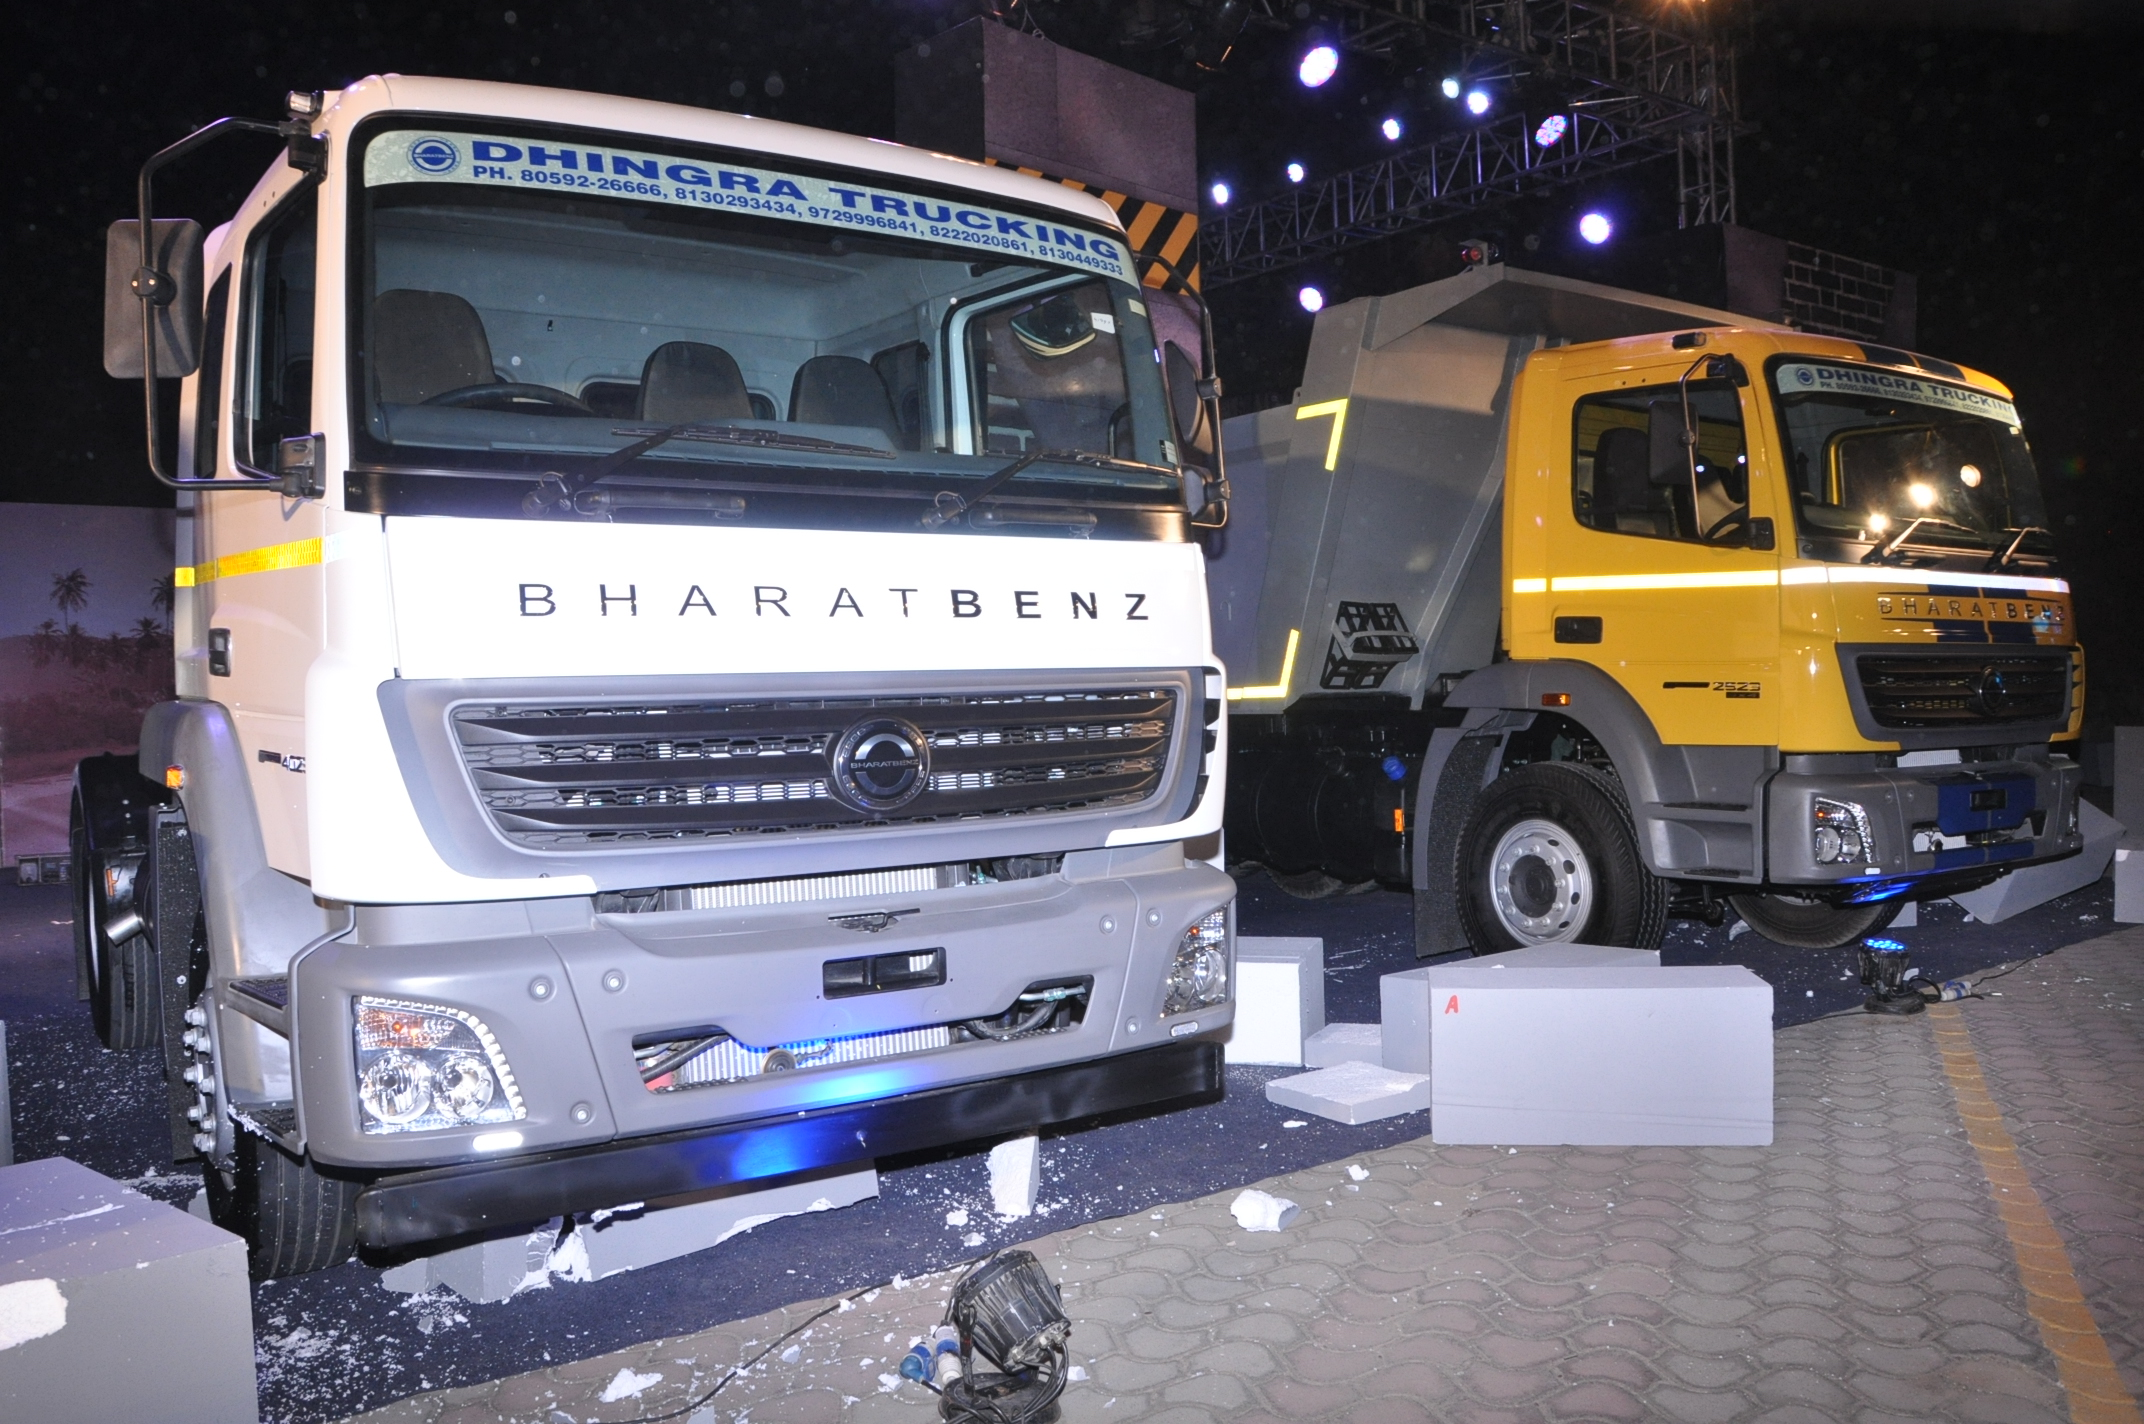 All New BharatBenz HDt range launched in Delhi (1)